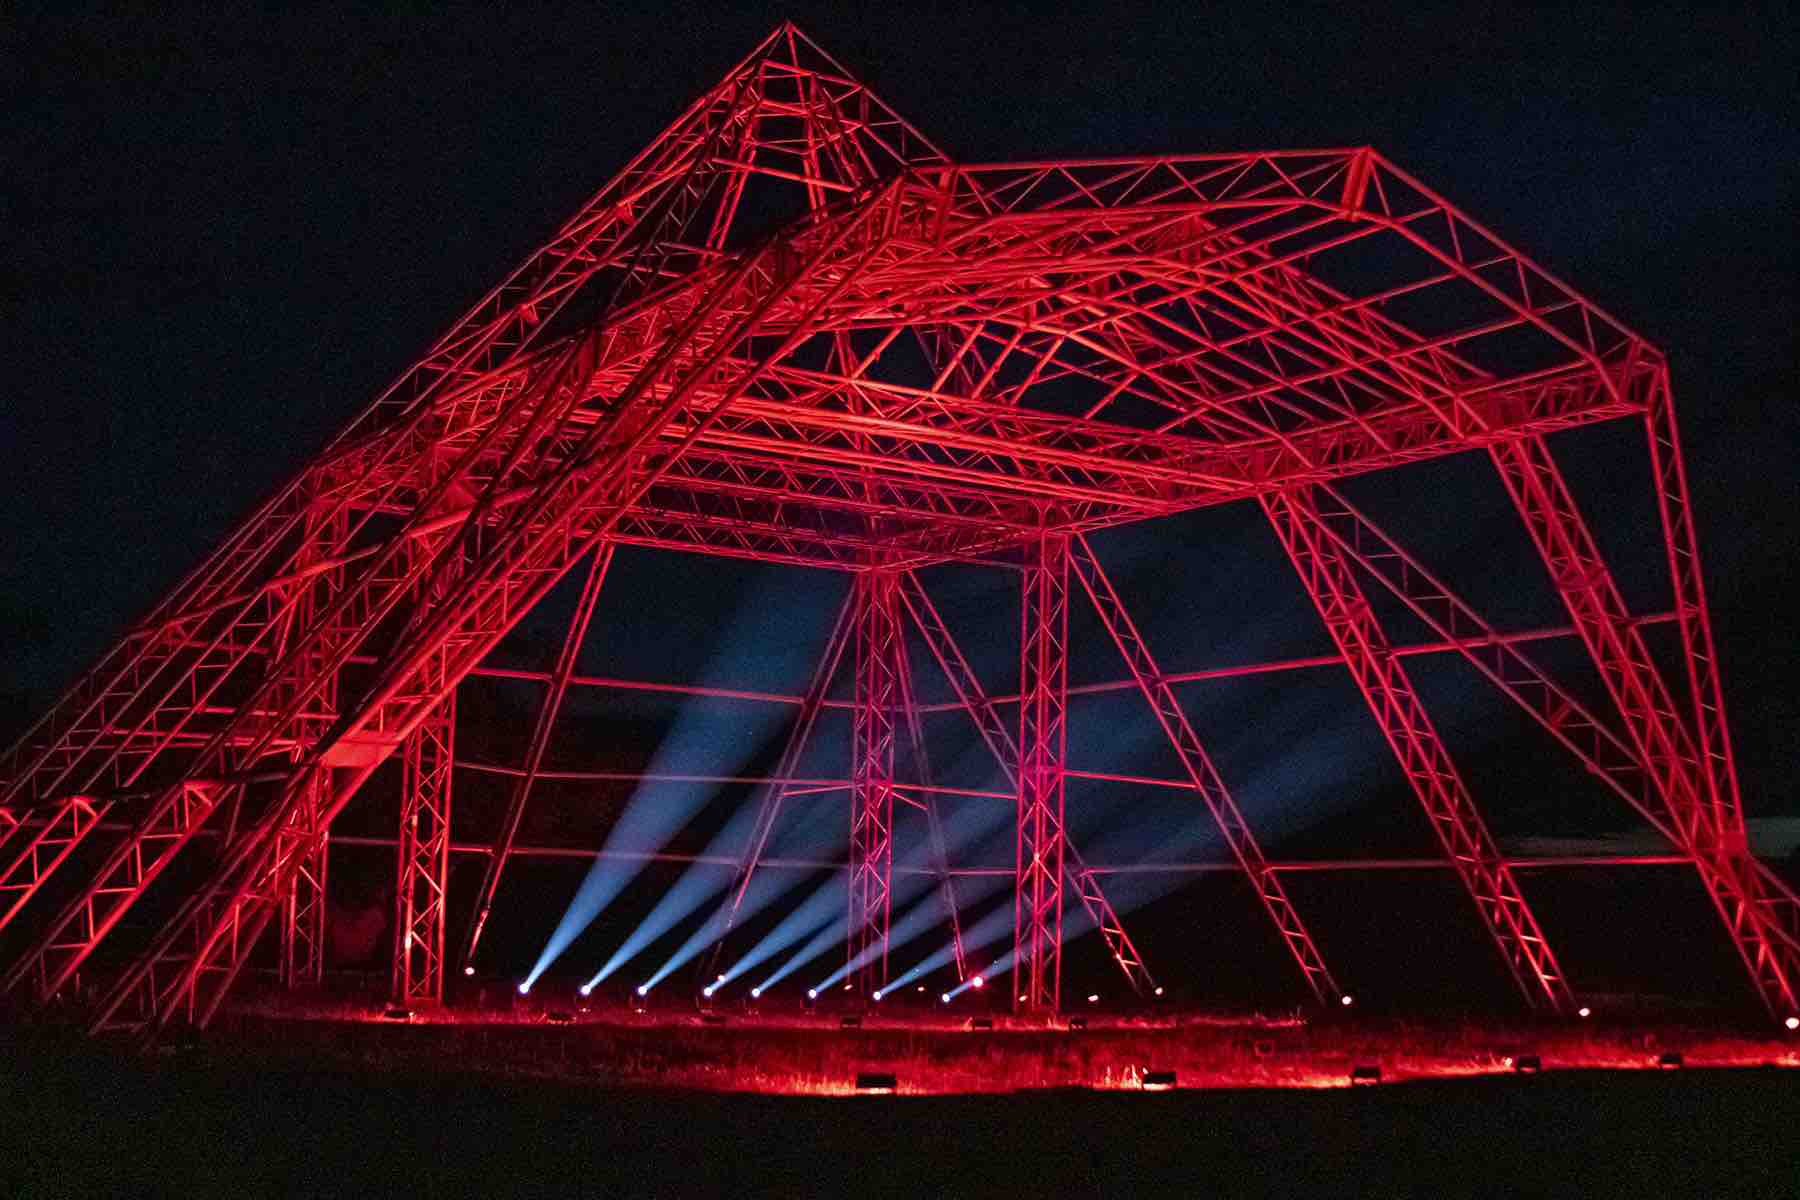 Over 670 #LightItInRed Illuminations across the UK